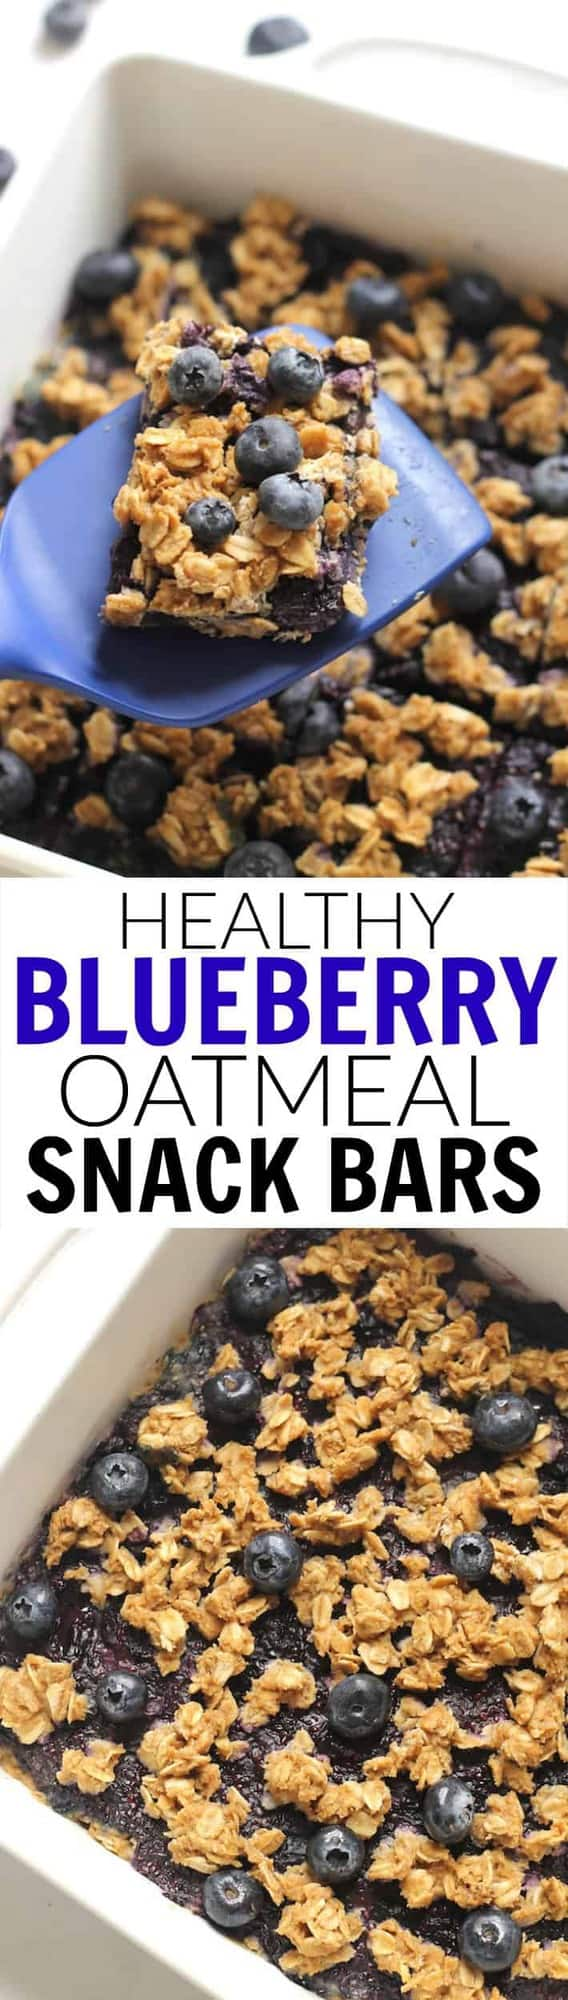 Healthy Blueberry Oatmeal Snack Bars made with no flour and only 155 calories per bar. A great kid-friendly dessert or whole grain snack!